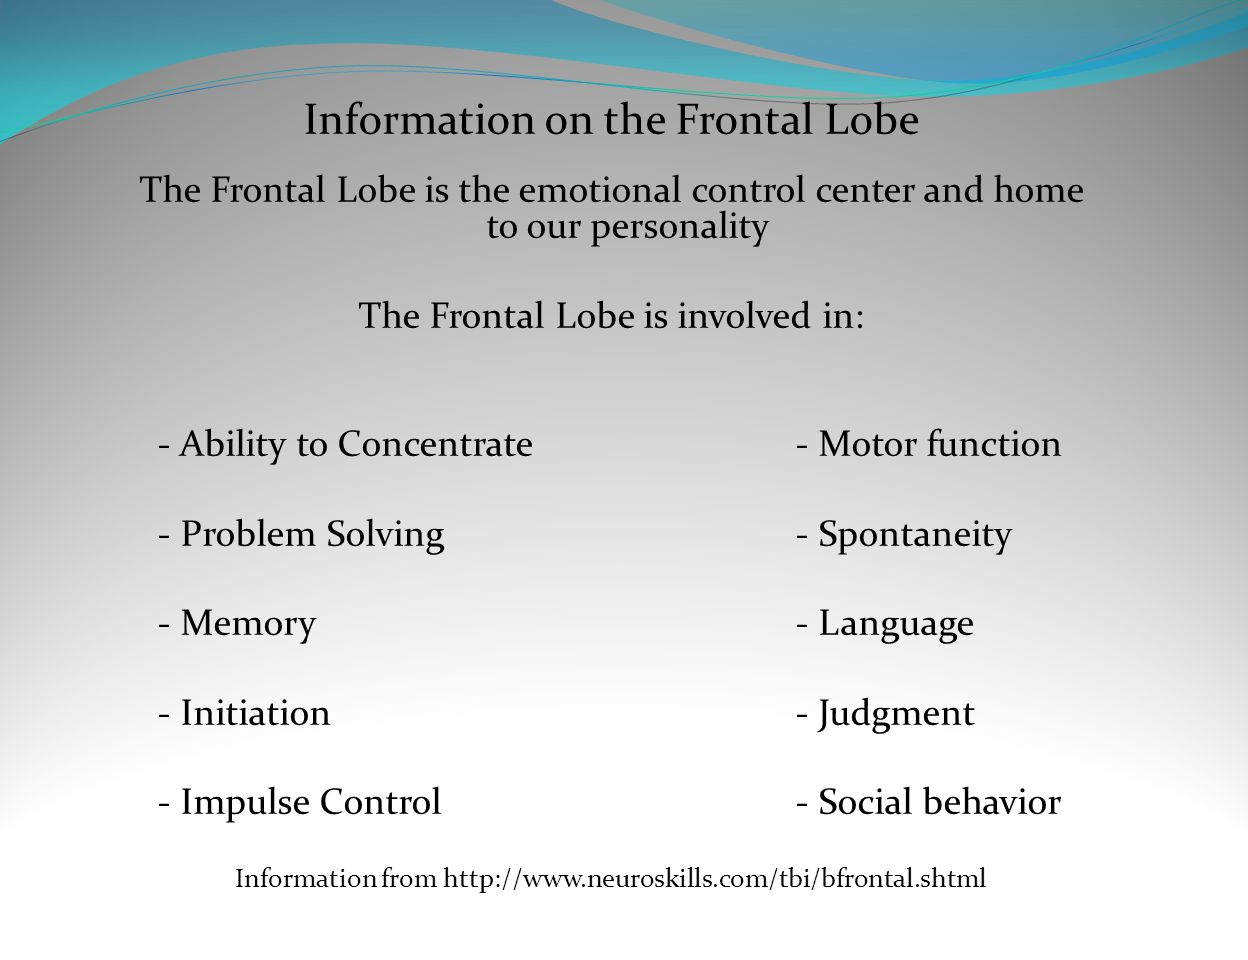 Information on the Frontal Lobe The Frontal Lobe is the emotional control center and home to our personality The Frontal Lobe is involved in: - Abilit